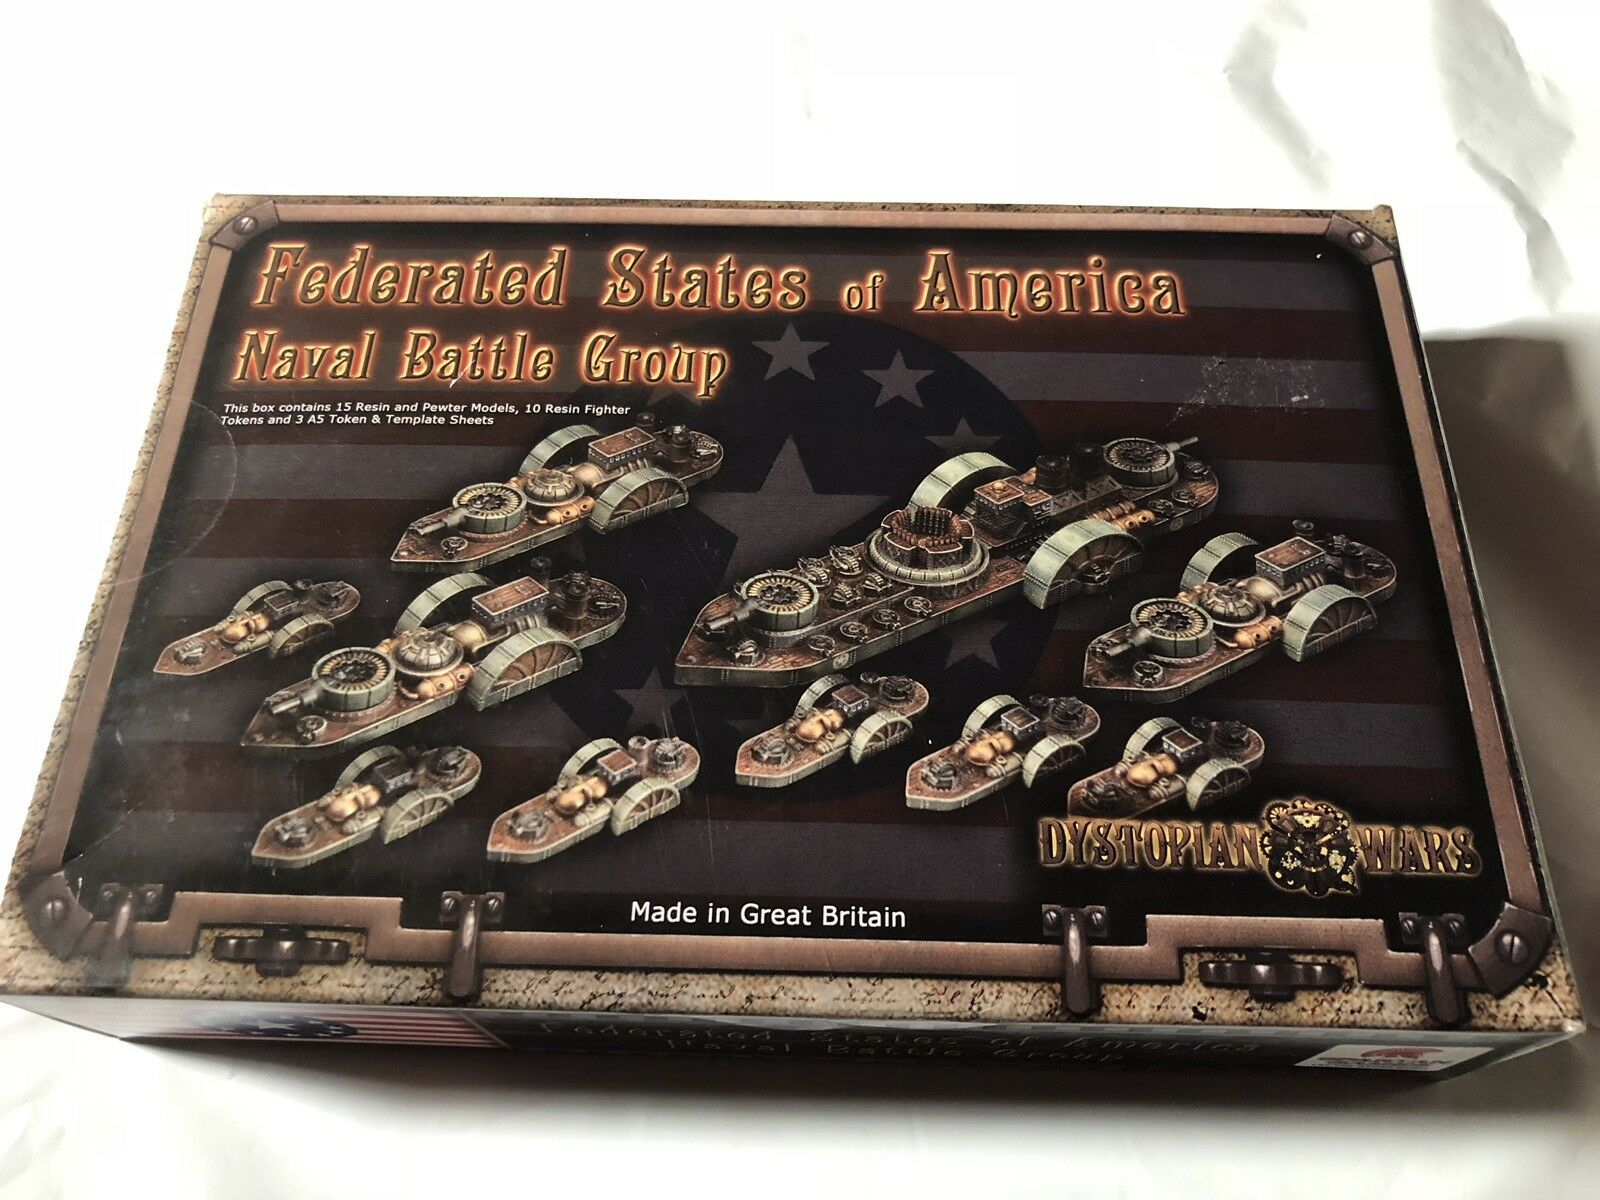 DISTOPIAN WARS FEDERATED STATES OF AMERICA NAVAL BATTLE GROUP, Never Used , Read